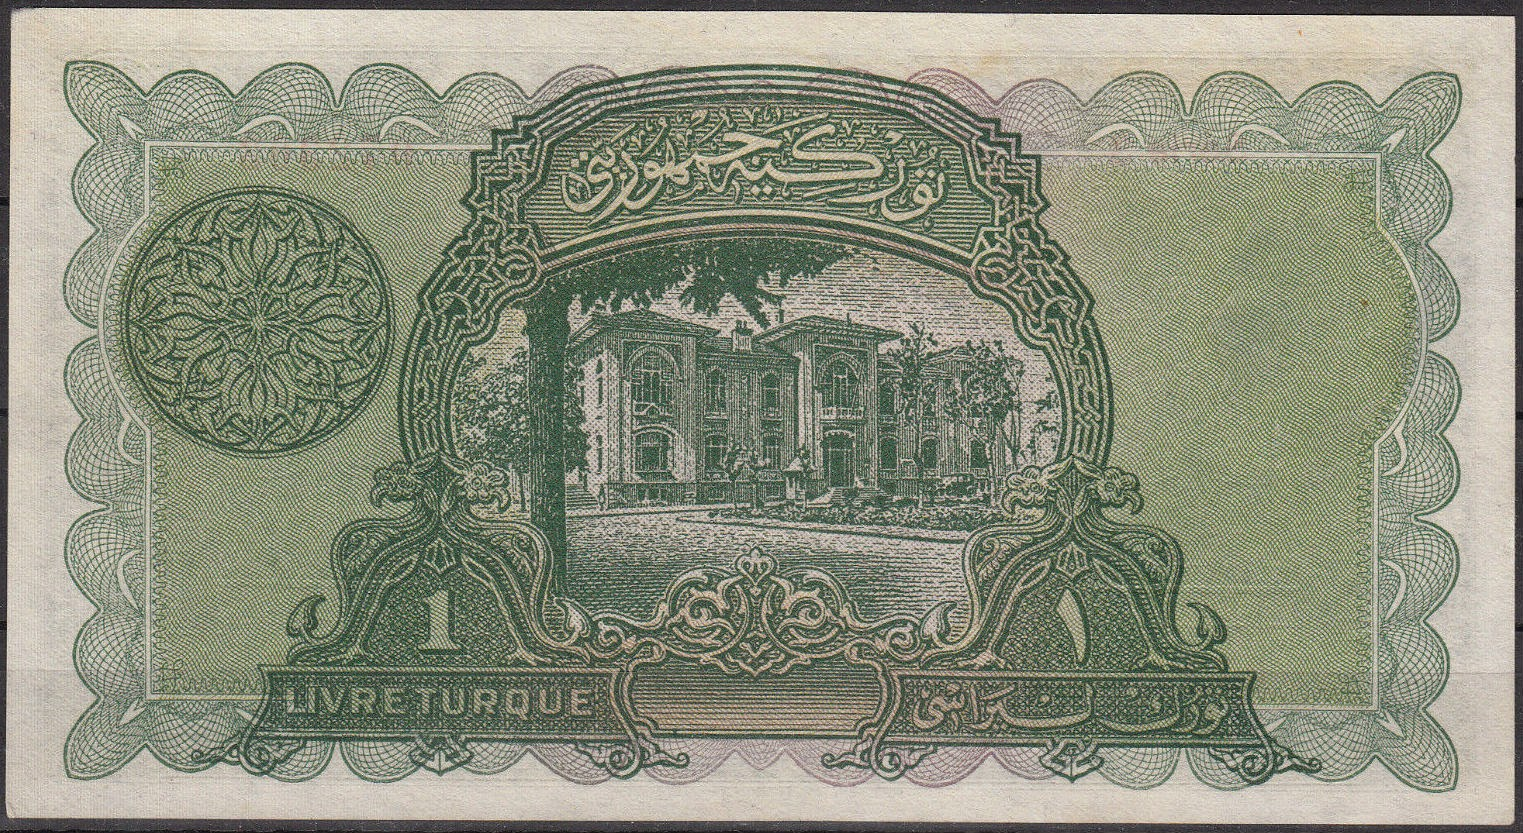 "Turkey currency money 1 Turkish Lira ""Livre Turque"" note 1926"